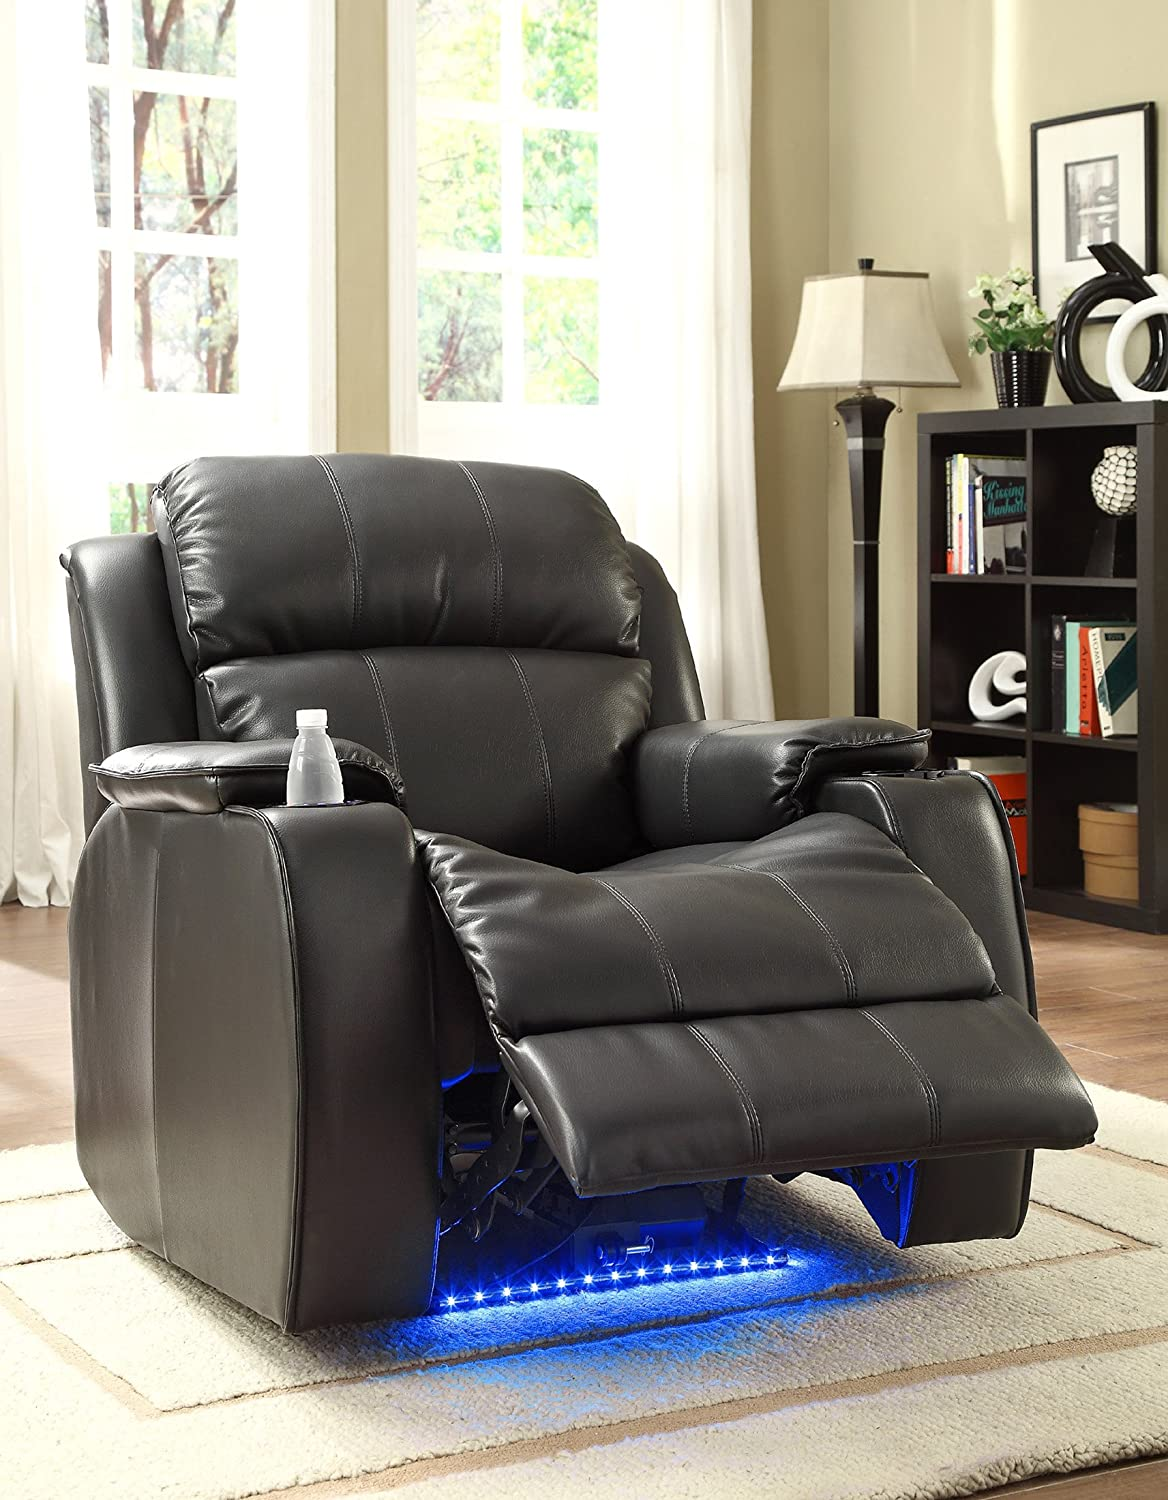 Best Reclining Chairs Recliners Reviews 2018 2019 On